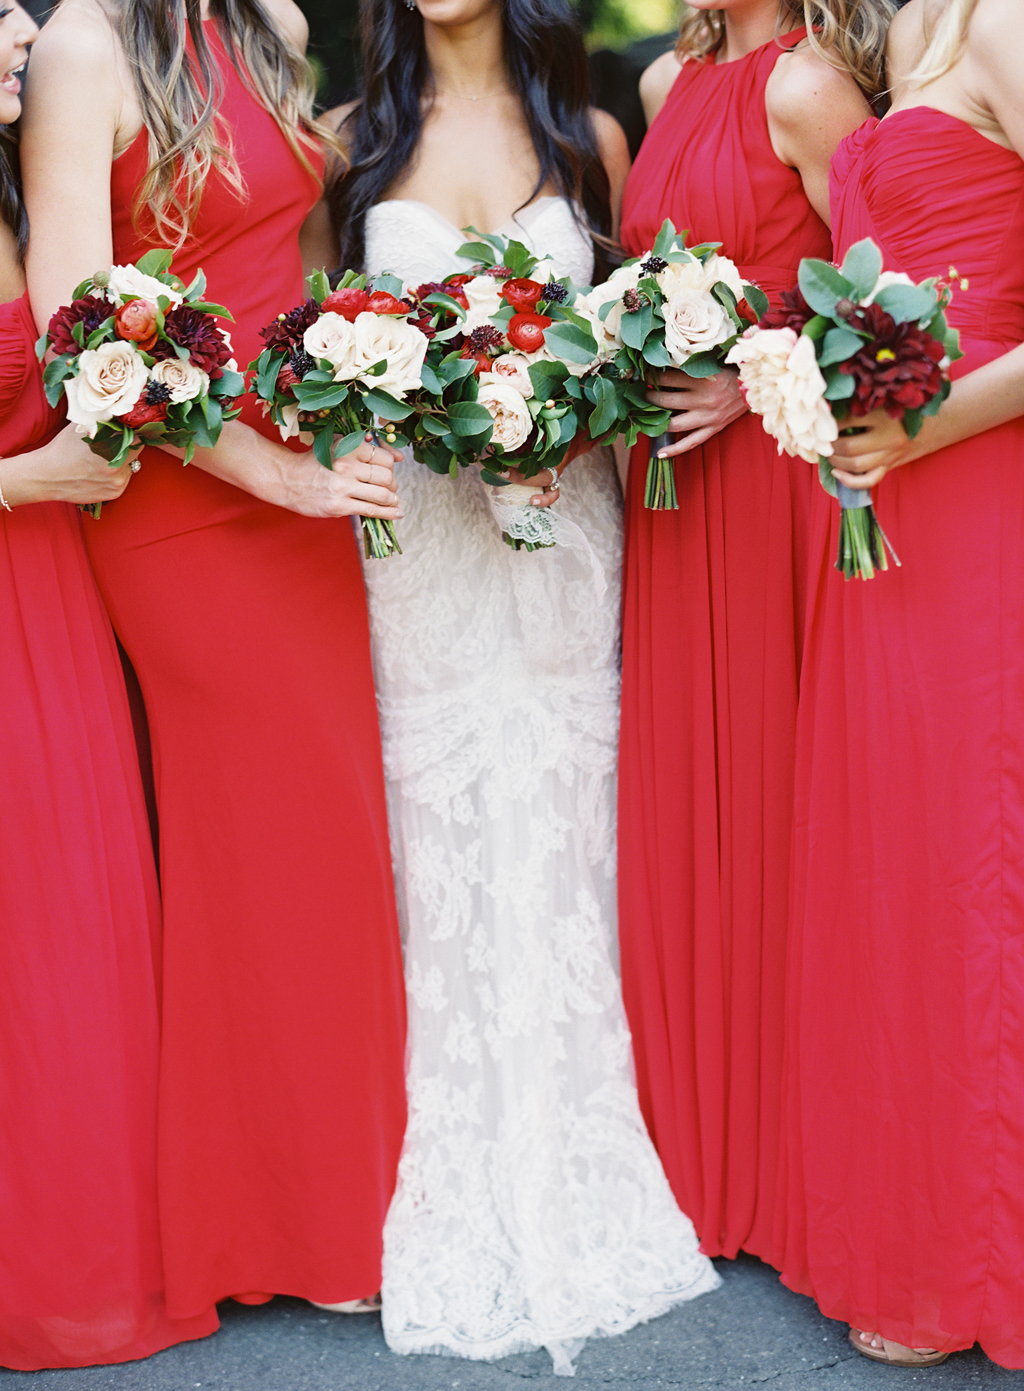 A film photograph of a bride and her bridesmaids at a wedding in Napa Valley.